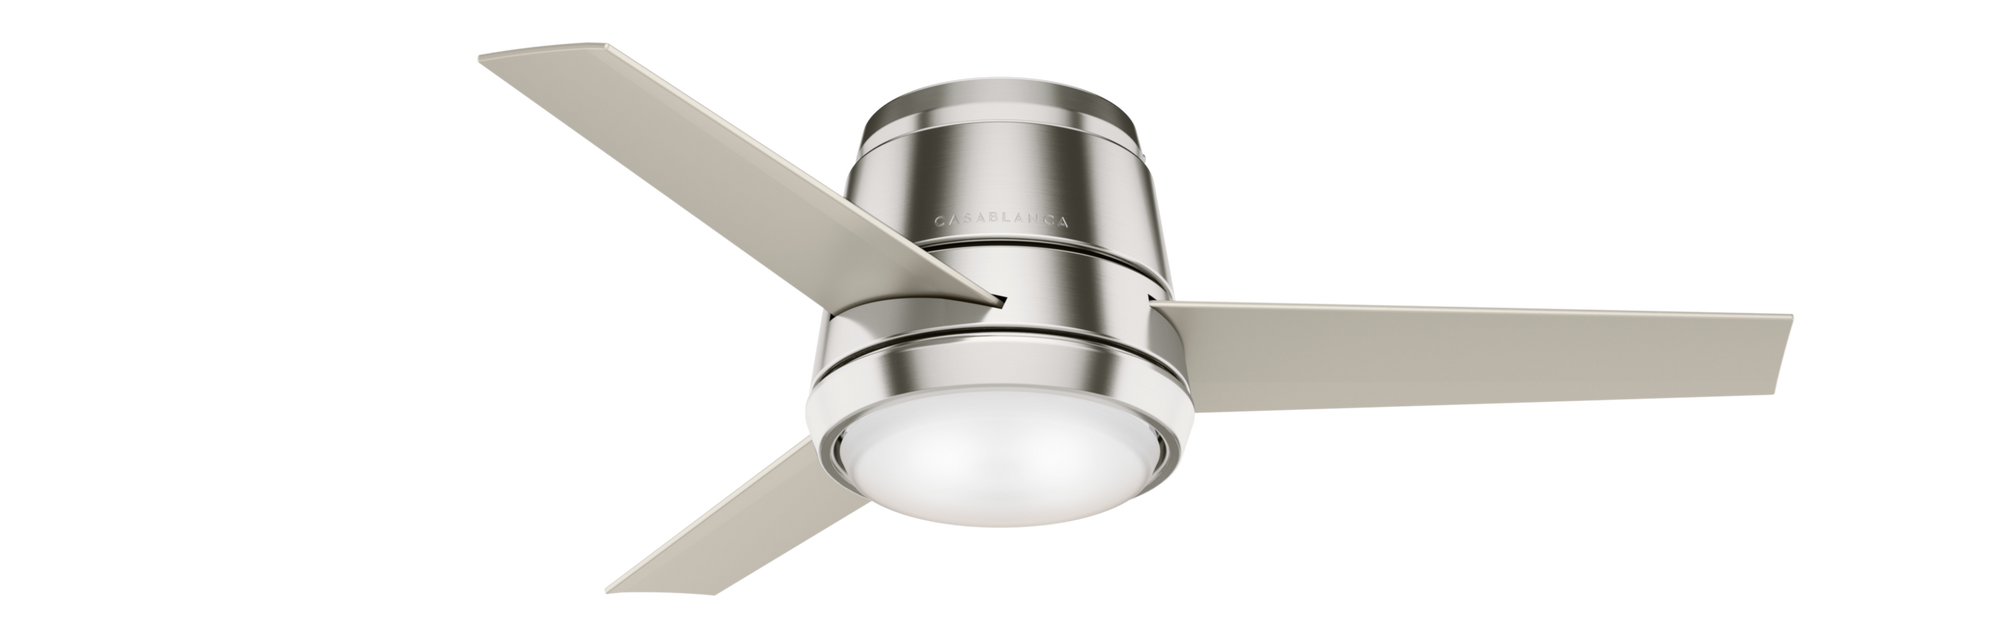 Casablanca Indoor Low Profile Commodus Ceiling Fan with LED LightJD inch, Brushed Nickel/Chrome, 59570